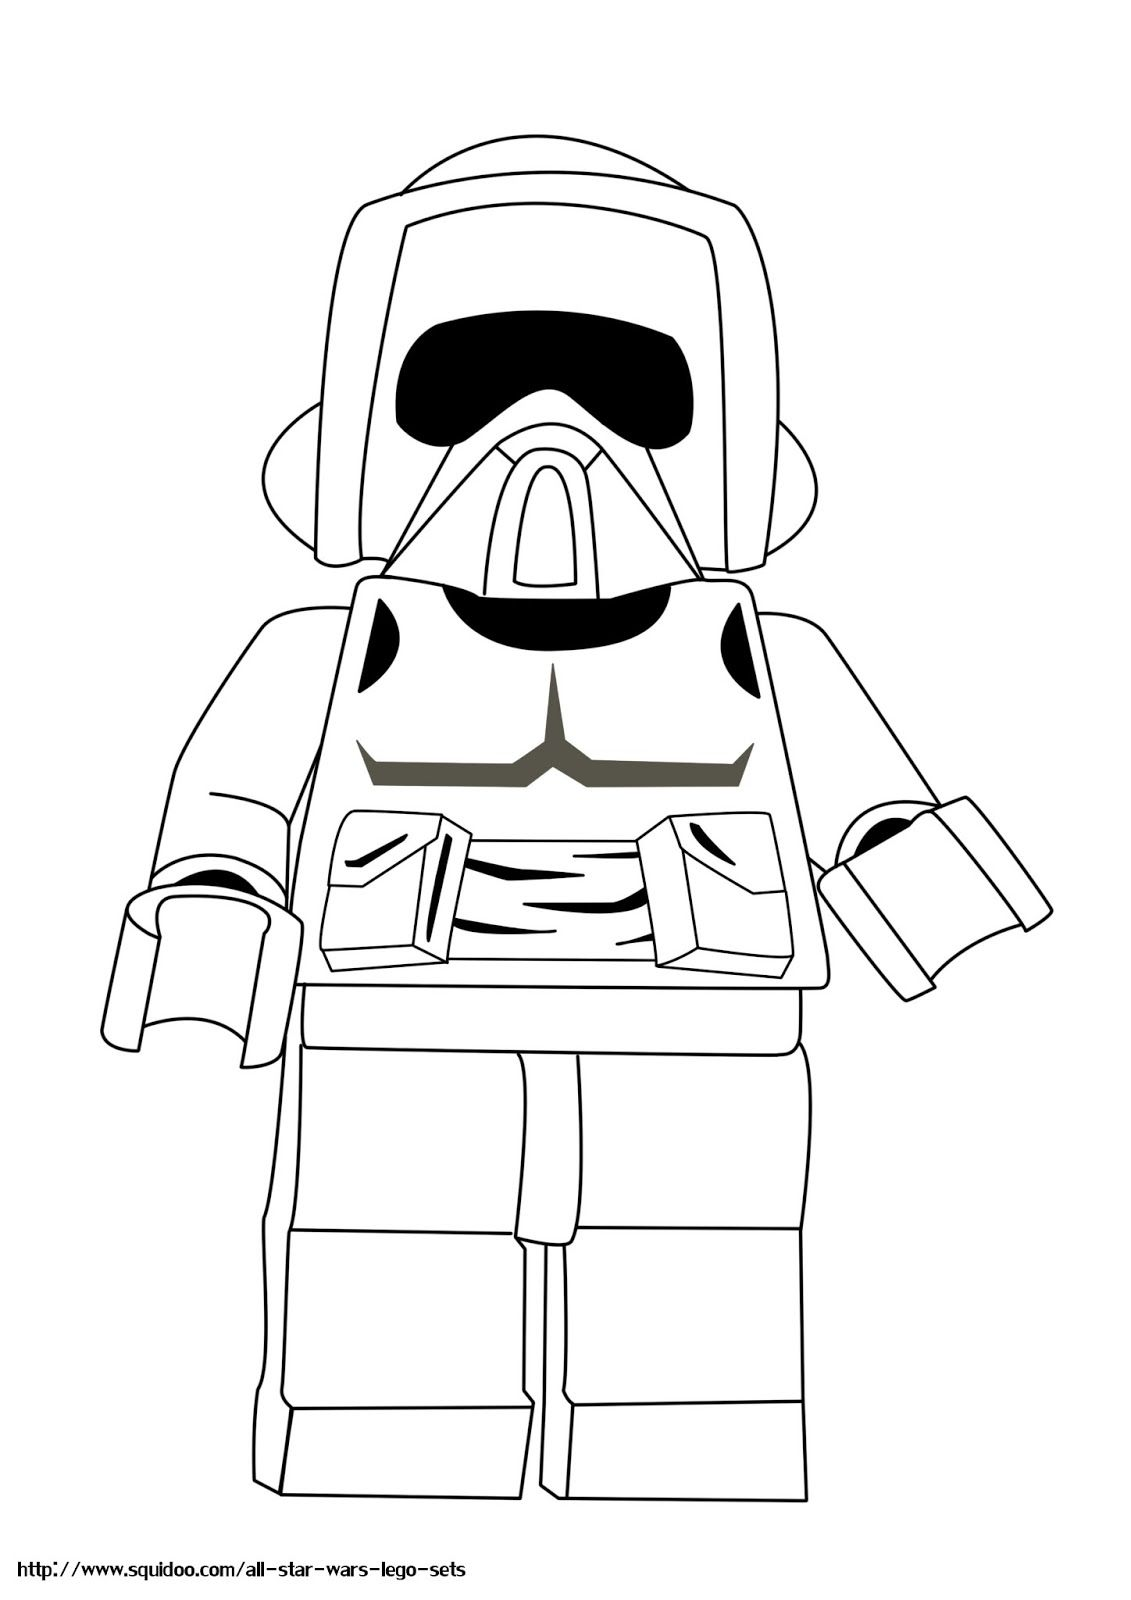 coloring lego star wars free printable lego coloring pages for kids cool2bkids wars lego star coloring